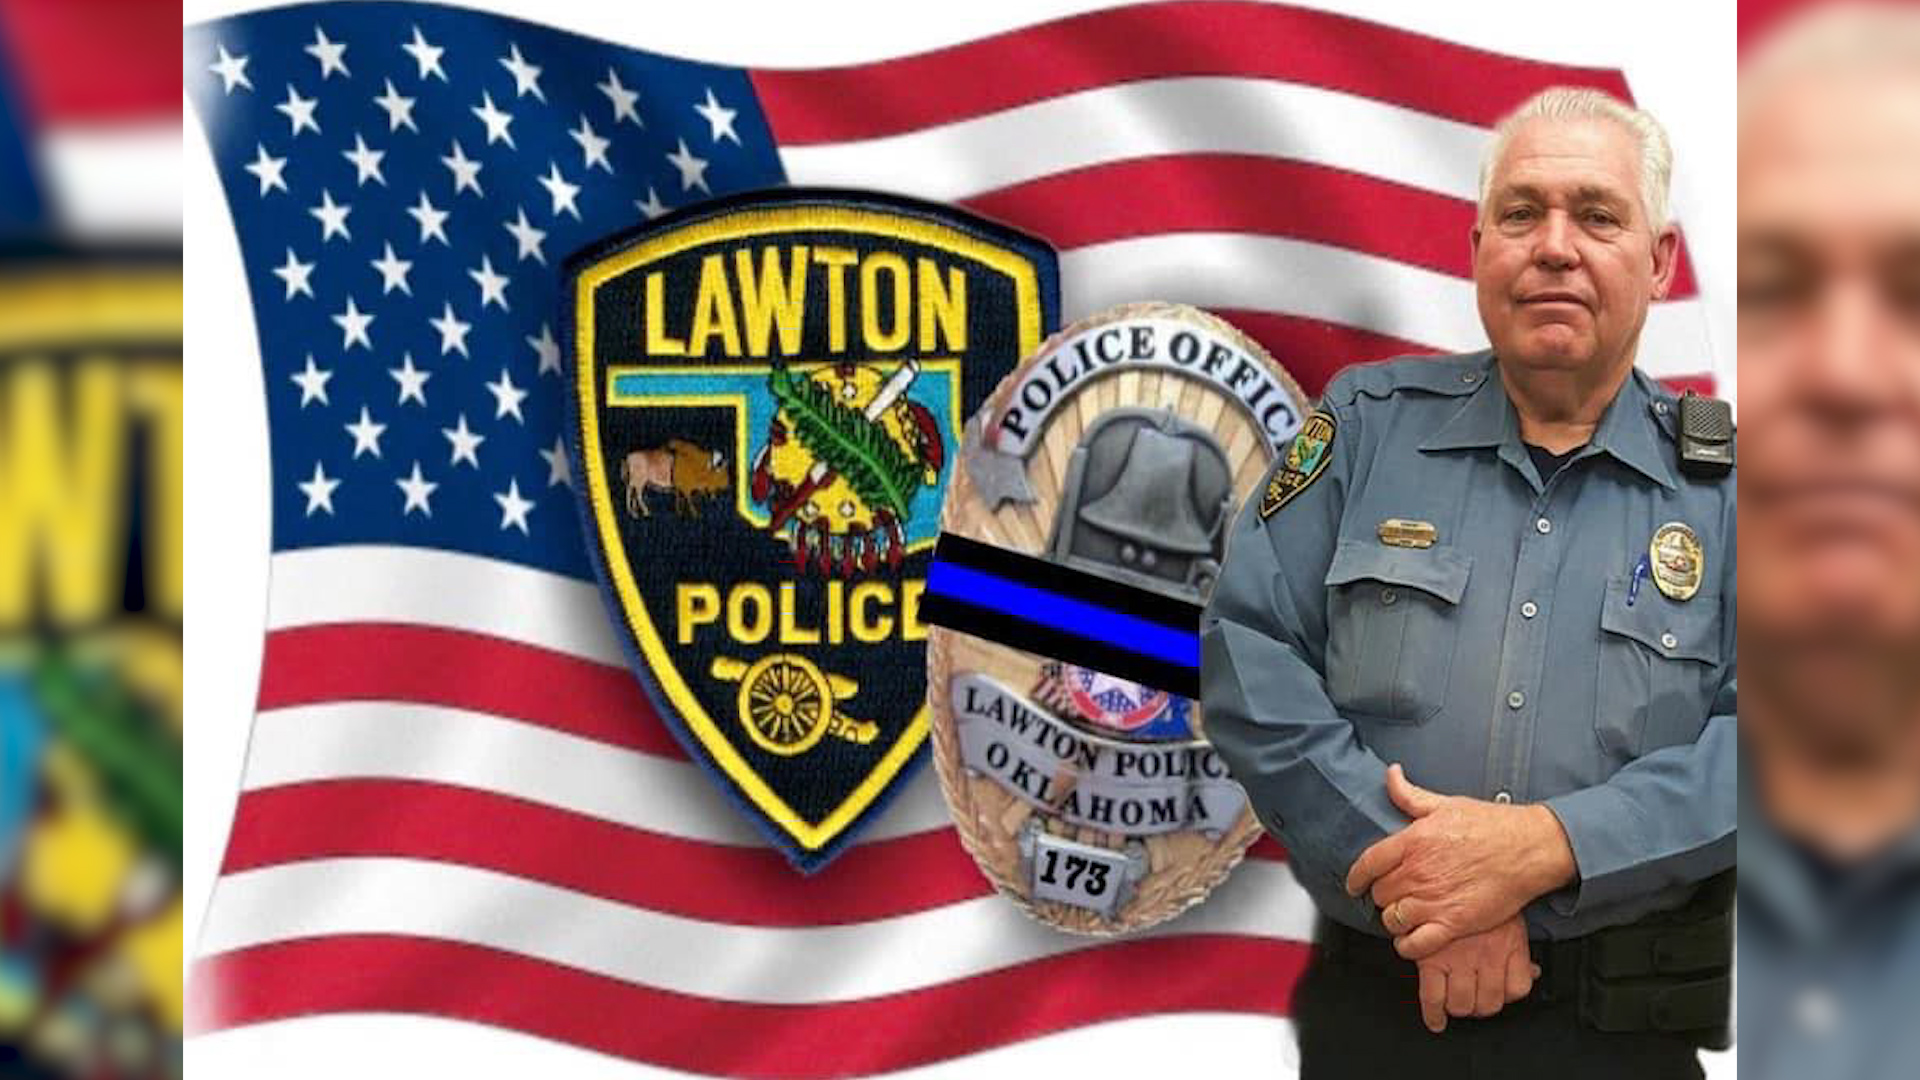 The Lawton community is mourning the loss of a well-known police officer who many say left them far too soon.